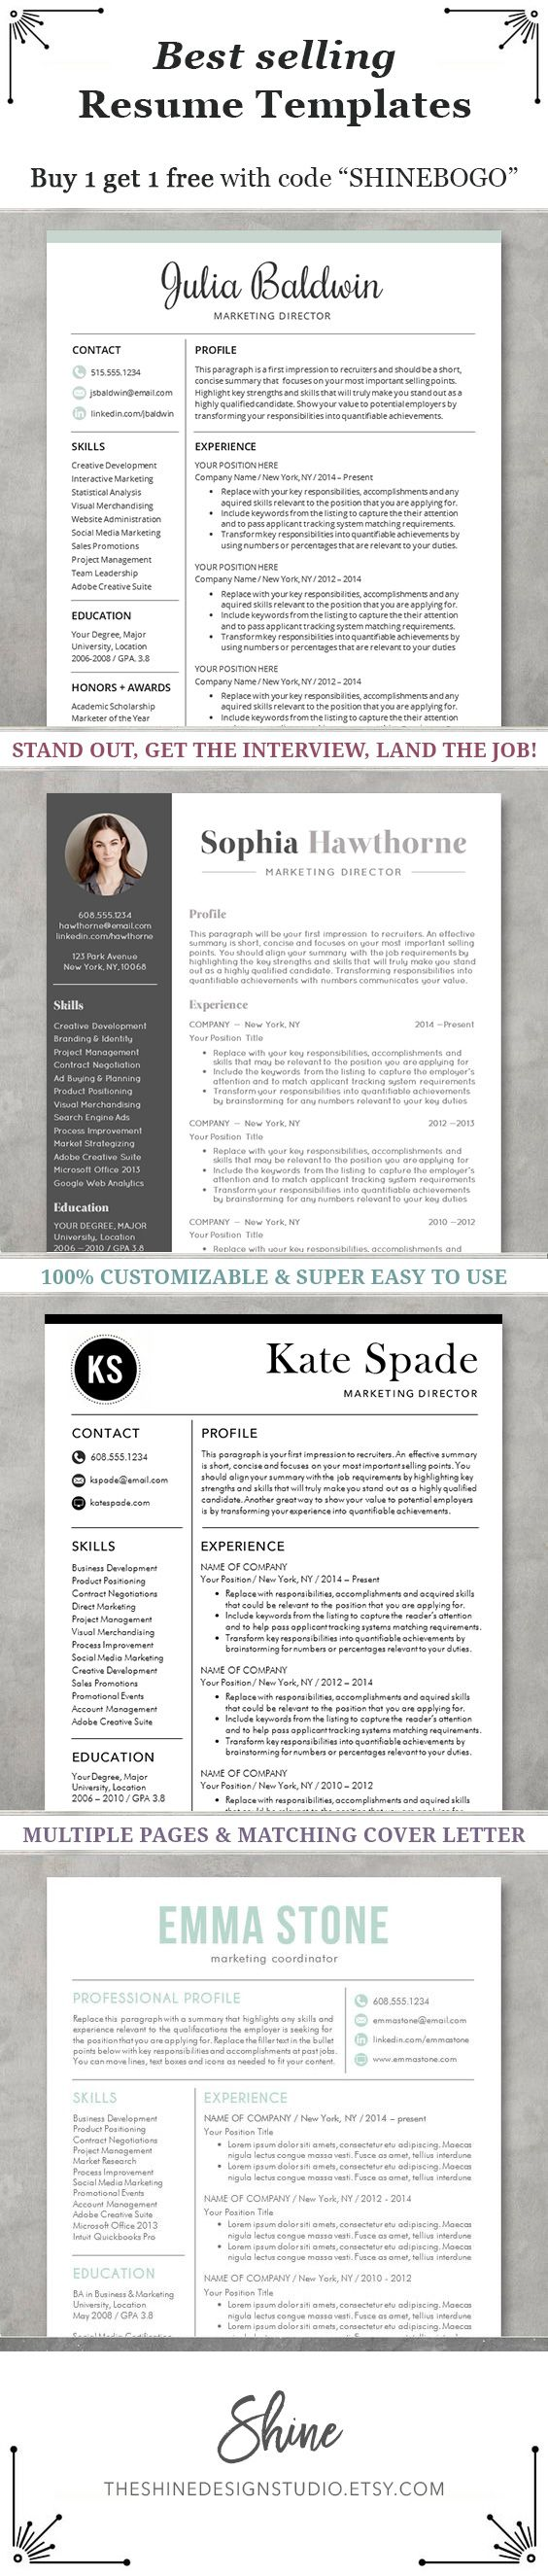 instant download resume templates cv template elegant instant download resume templates cv template elegant resume designs for word yelopaper Choice Image